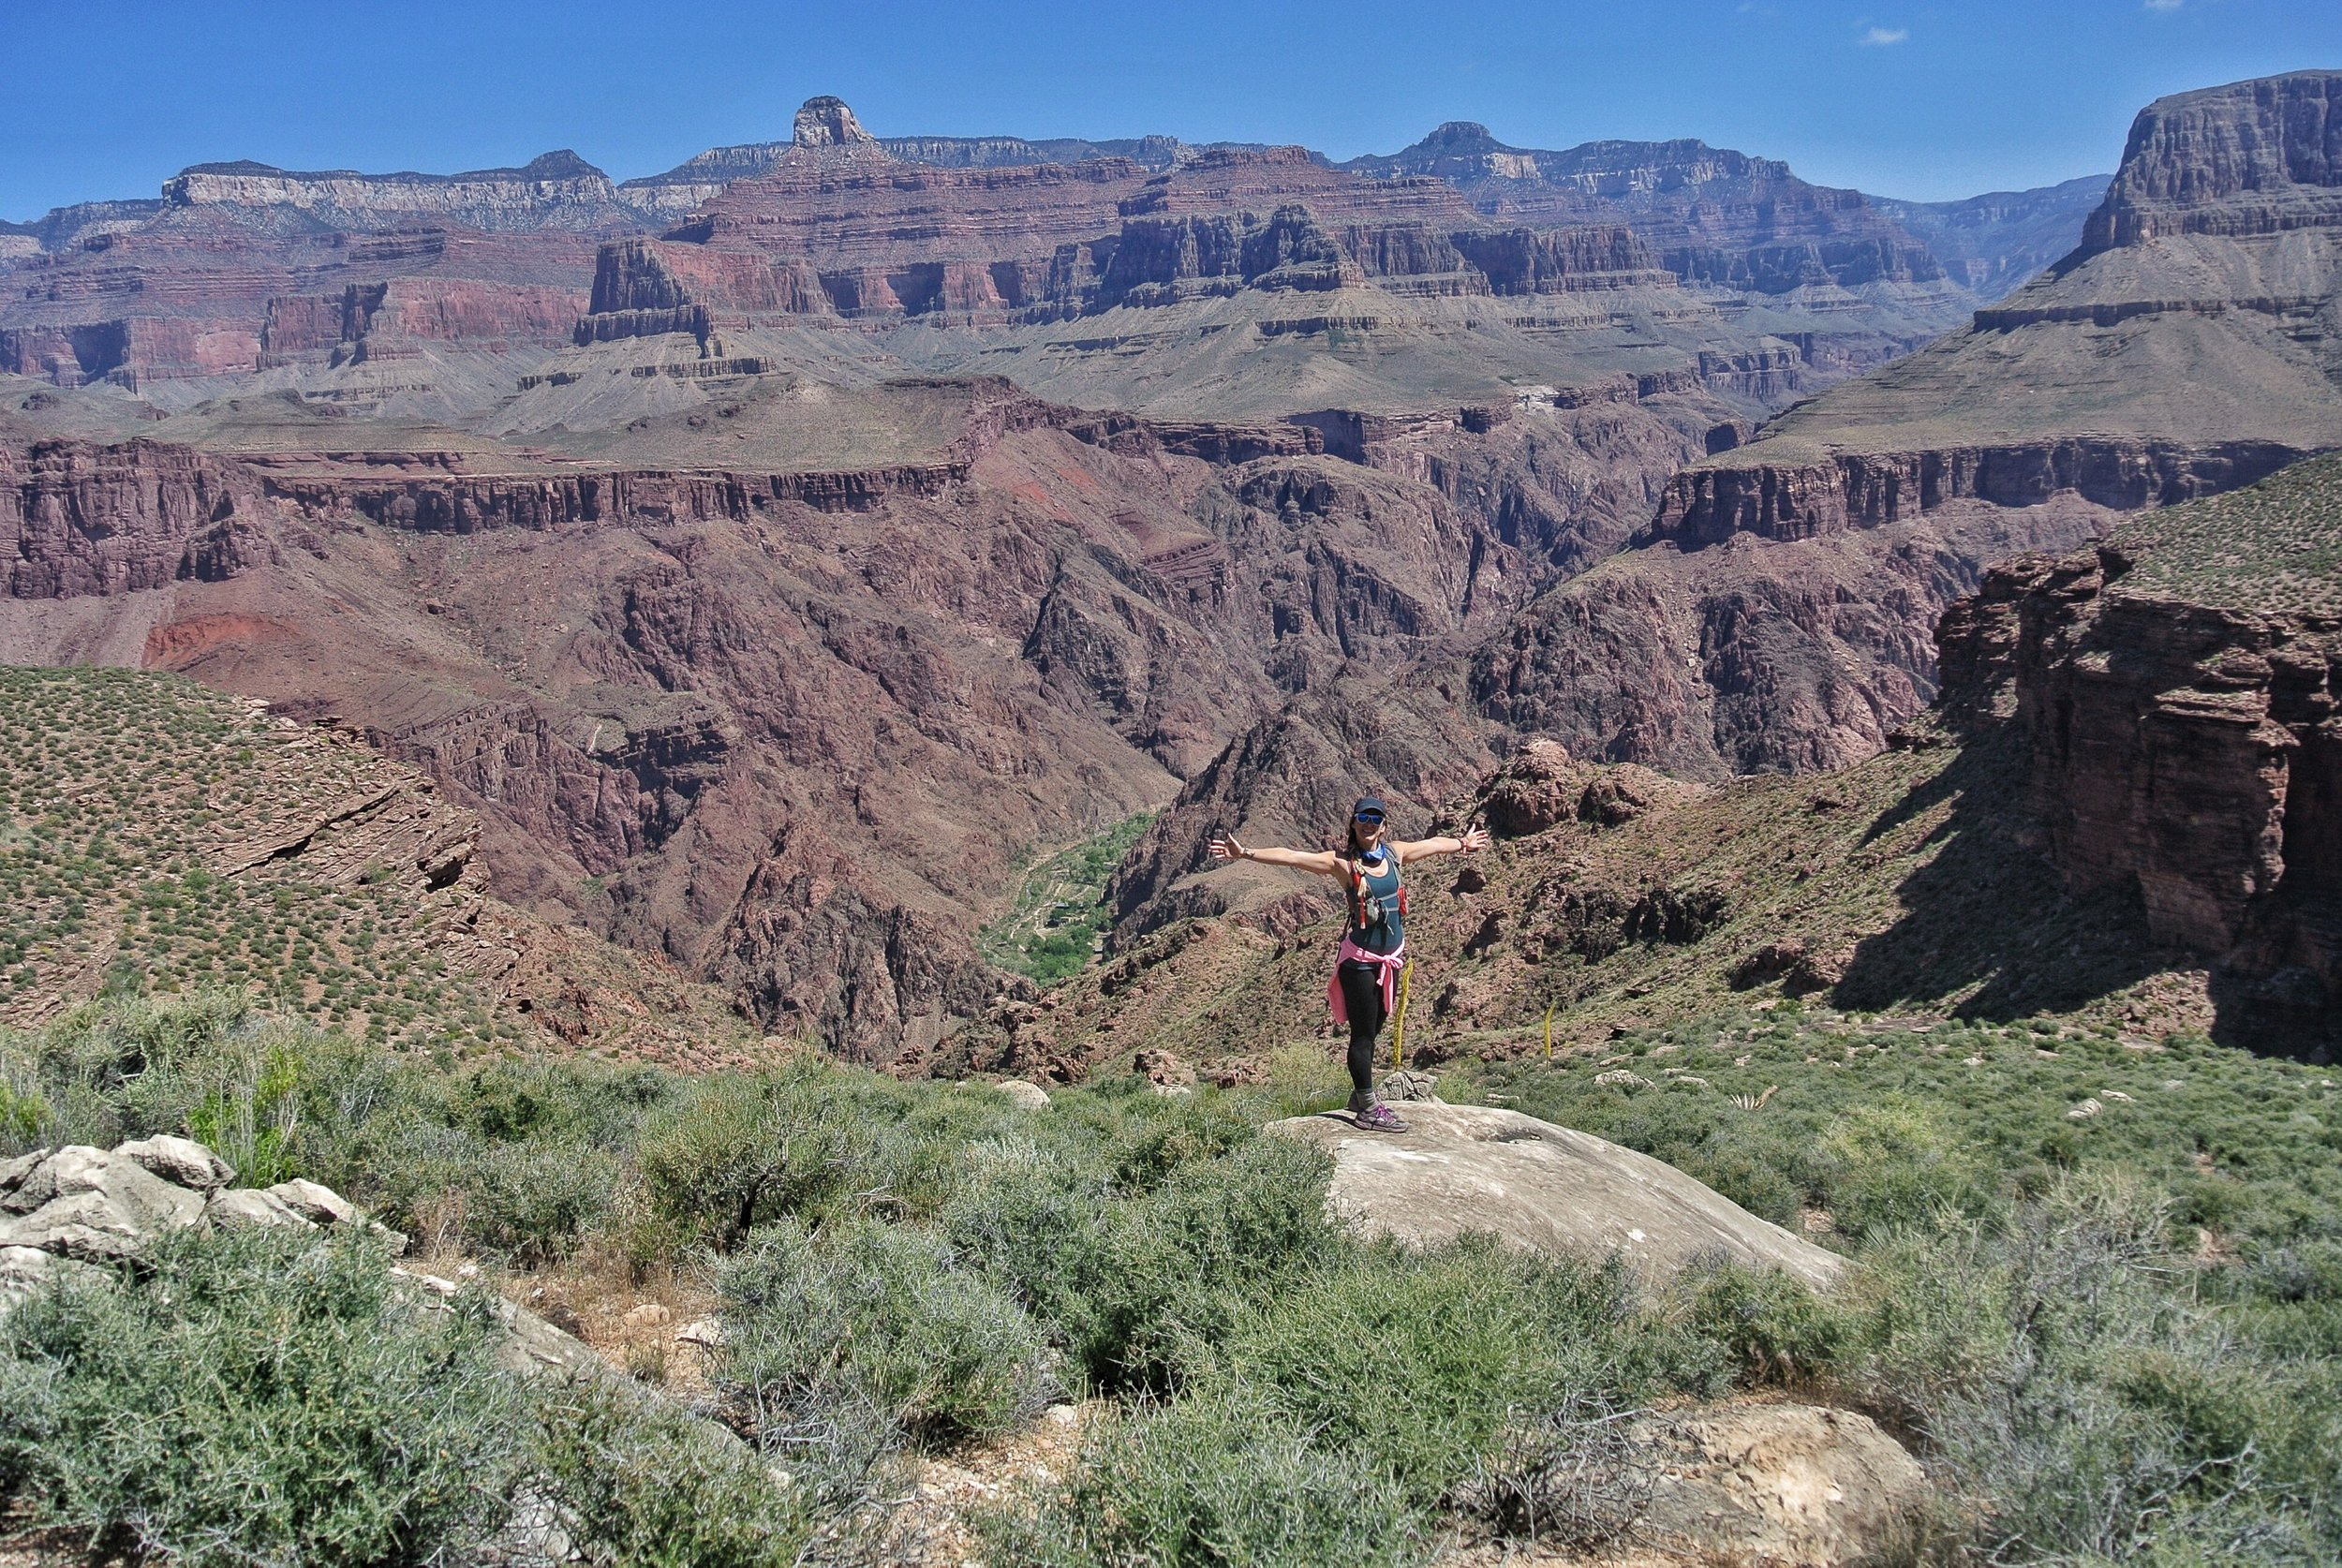 Tonto Trail overlook, Grand Canyon